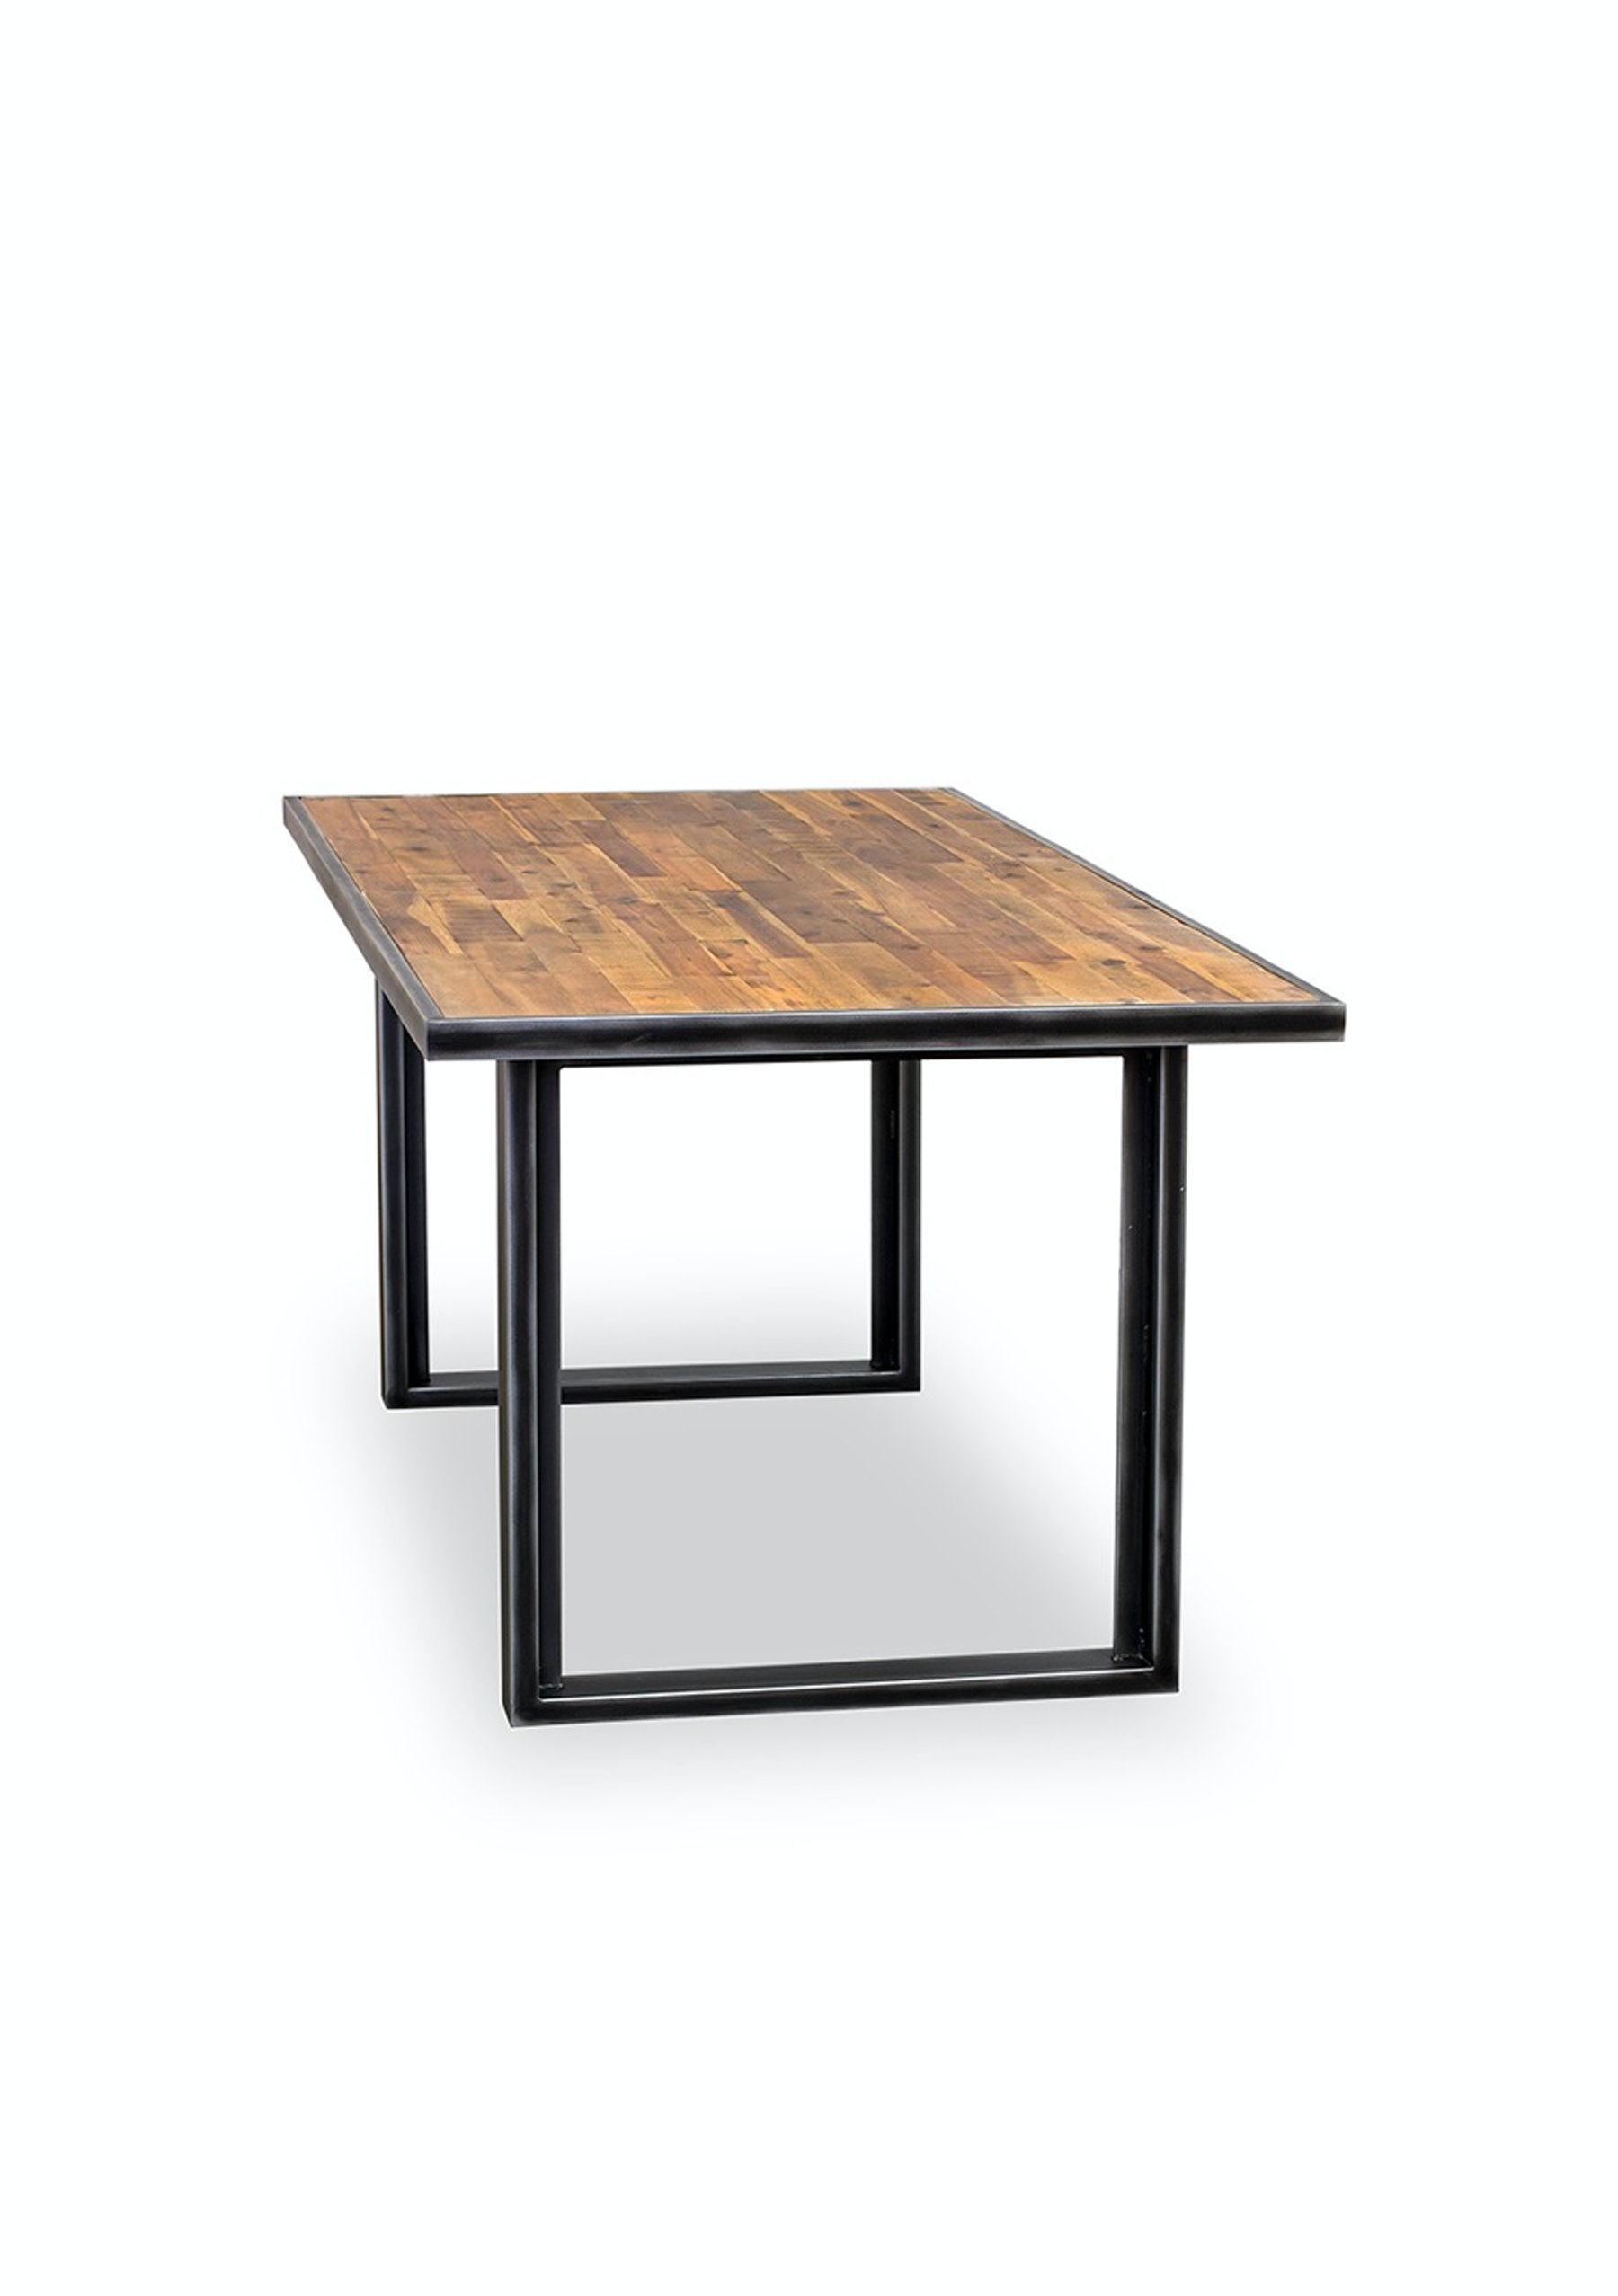 Furniture By Design Rustic Madrid Dining Table New Collection